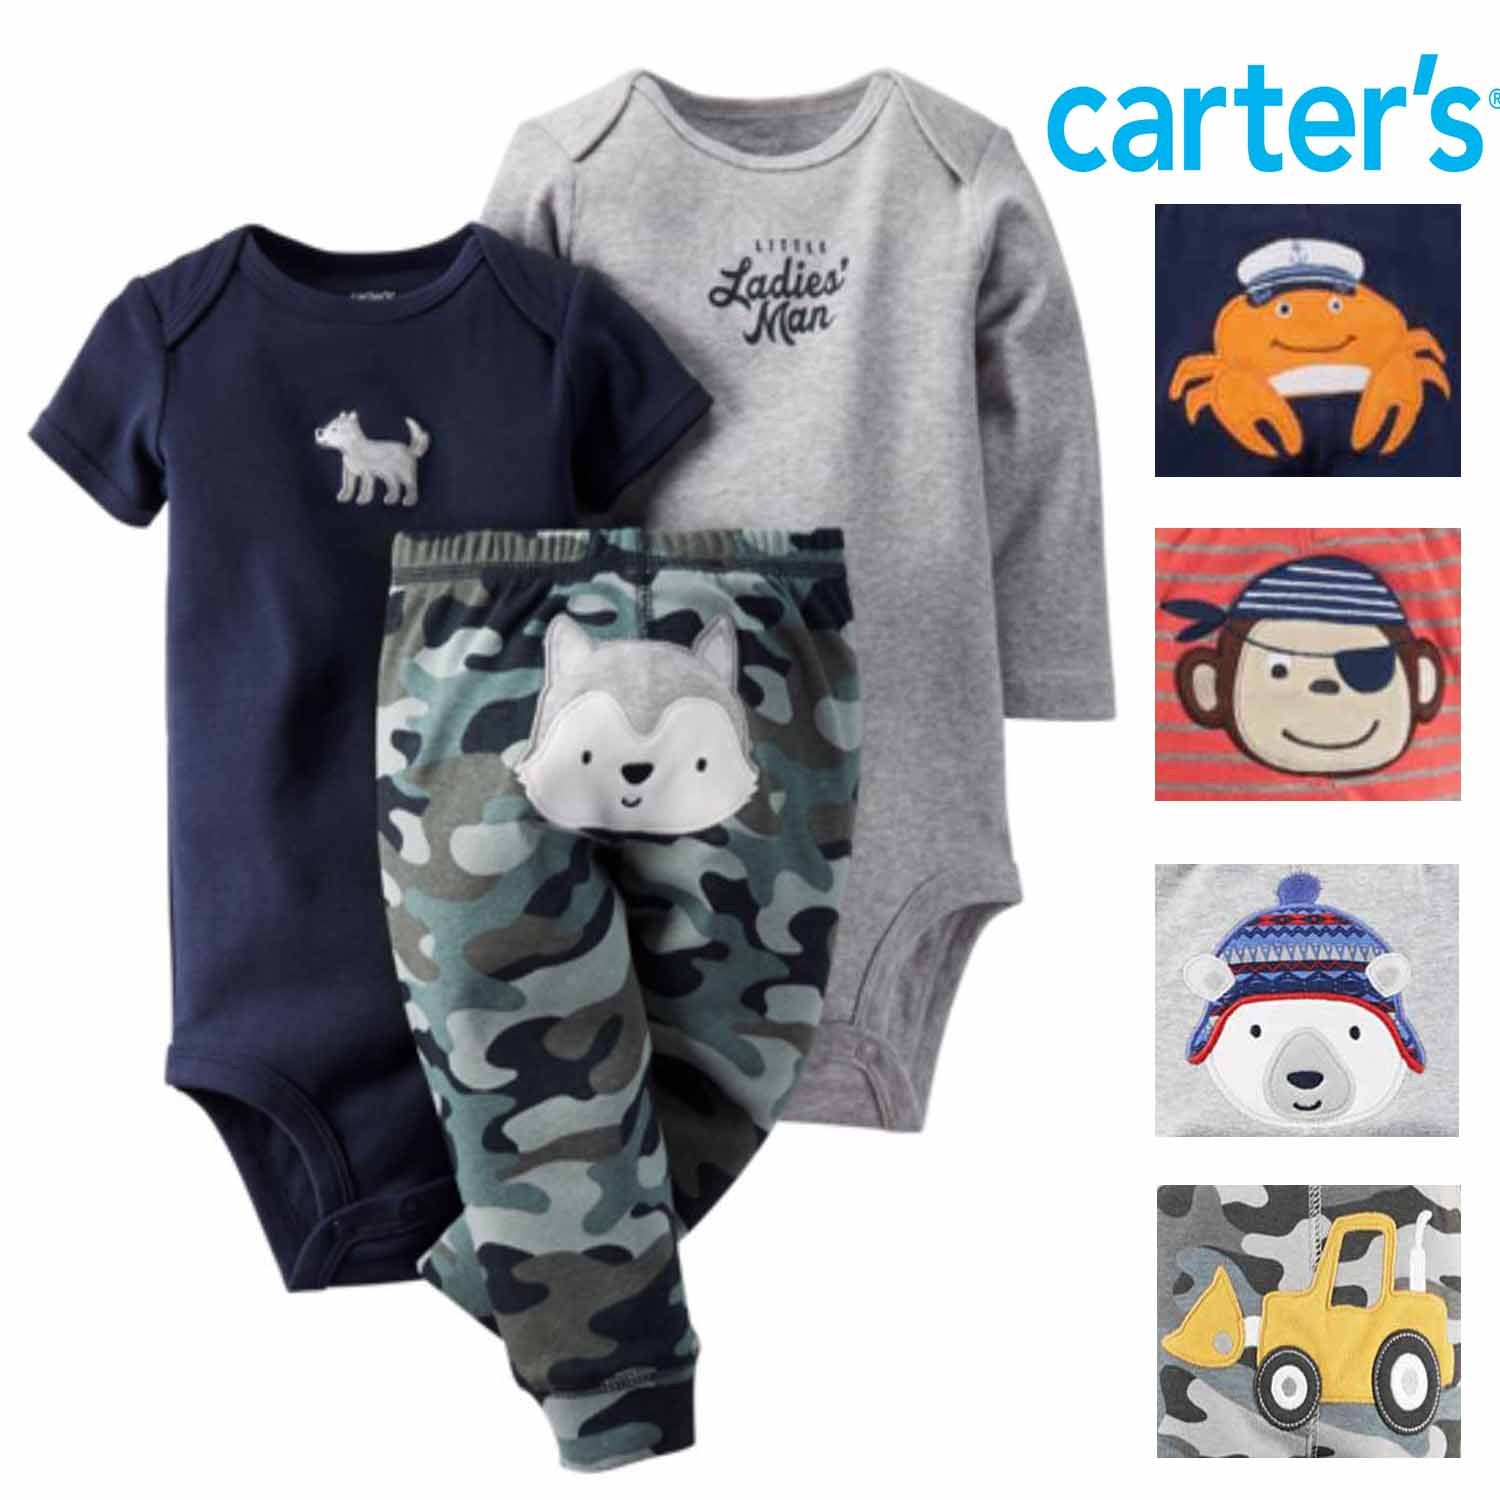 9M Carters Baby Boys Graphic Jersey Tee - Spaceships Baby